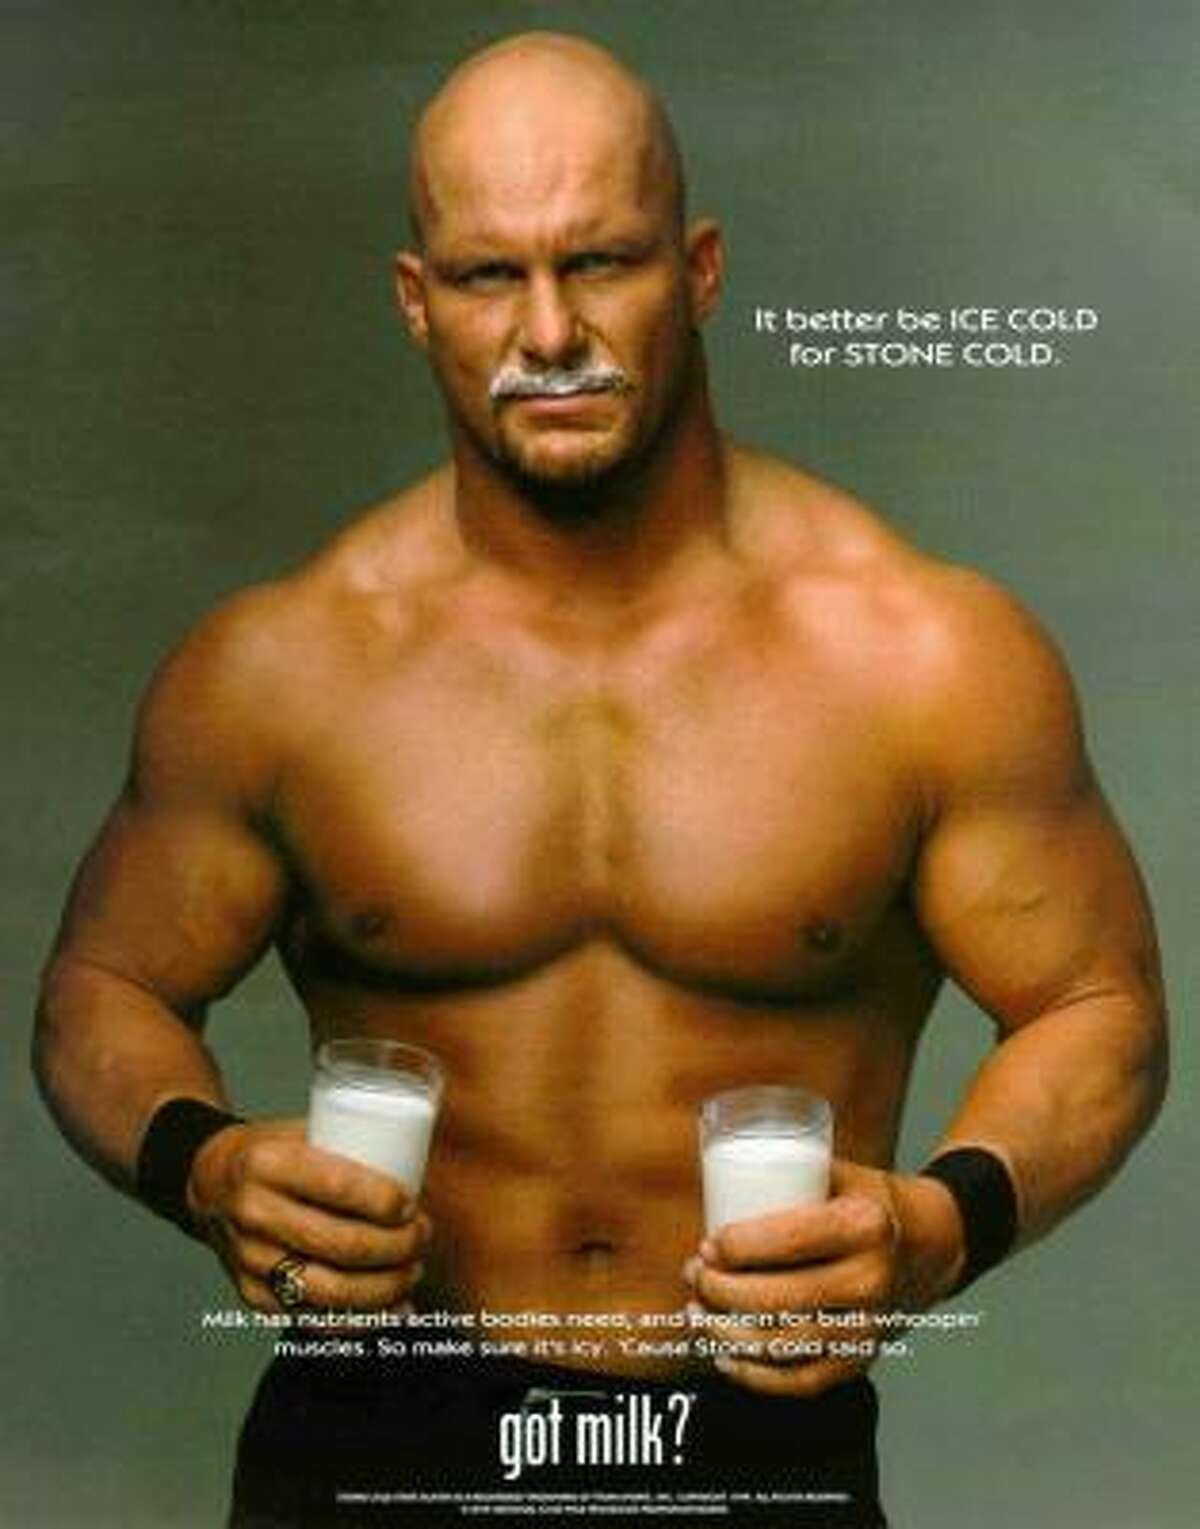 Stone Cold Steve Austin, is sporting a brand new `stache - of ice cold milk that is.